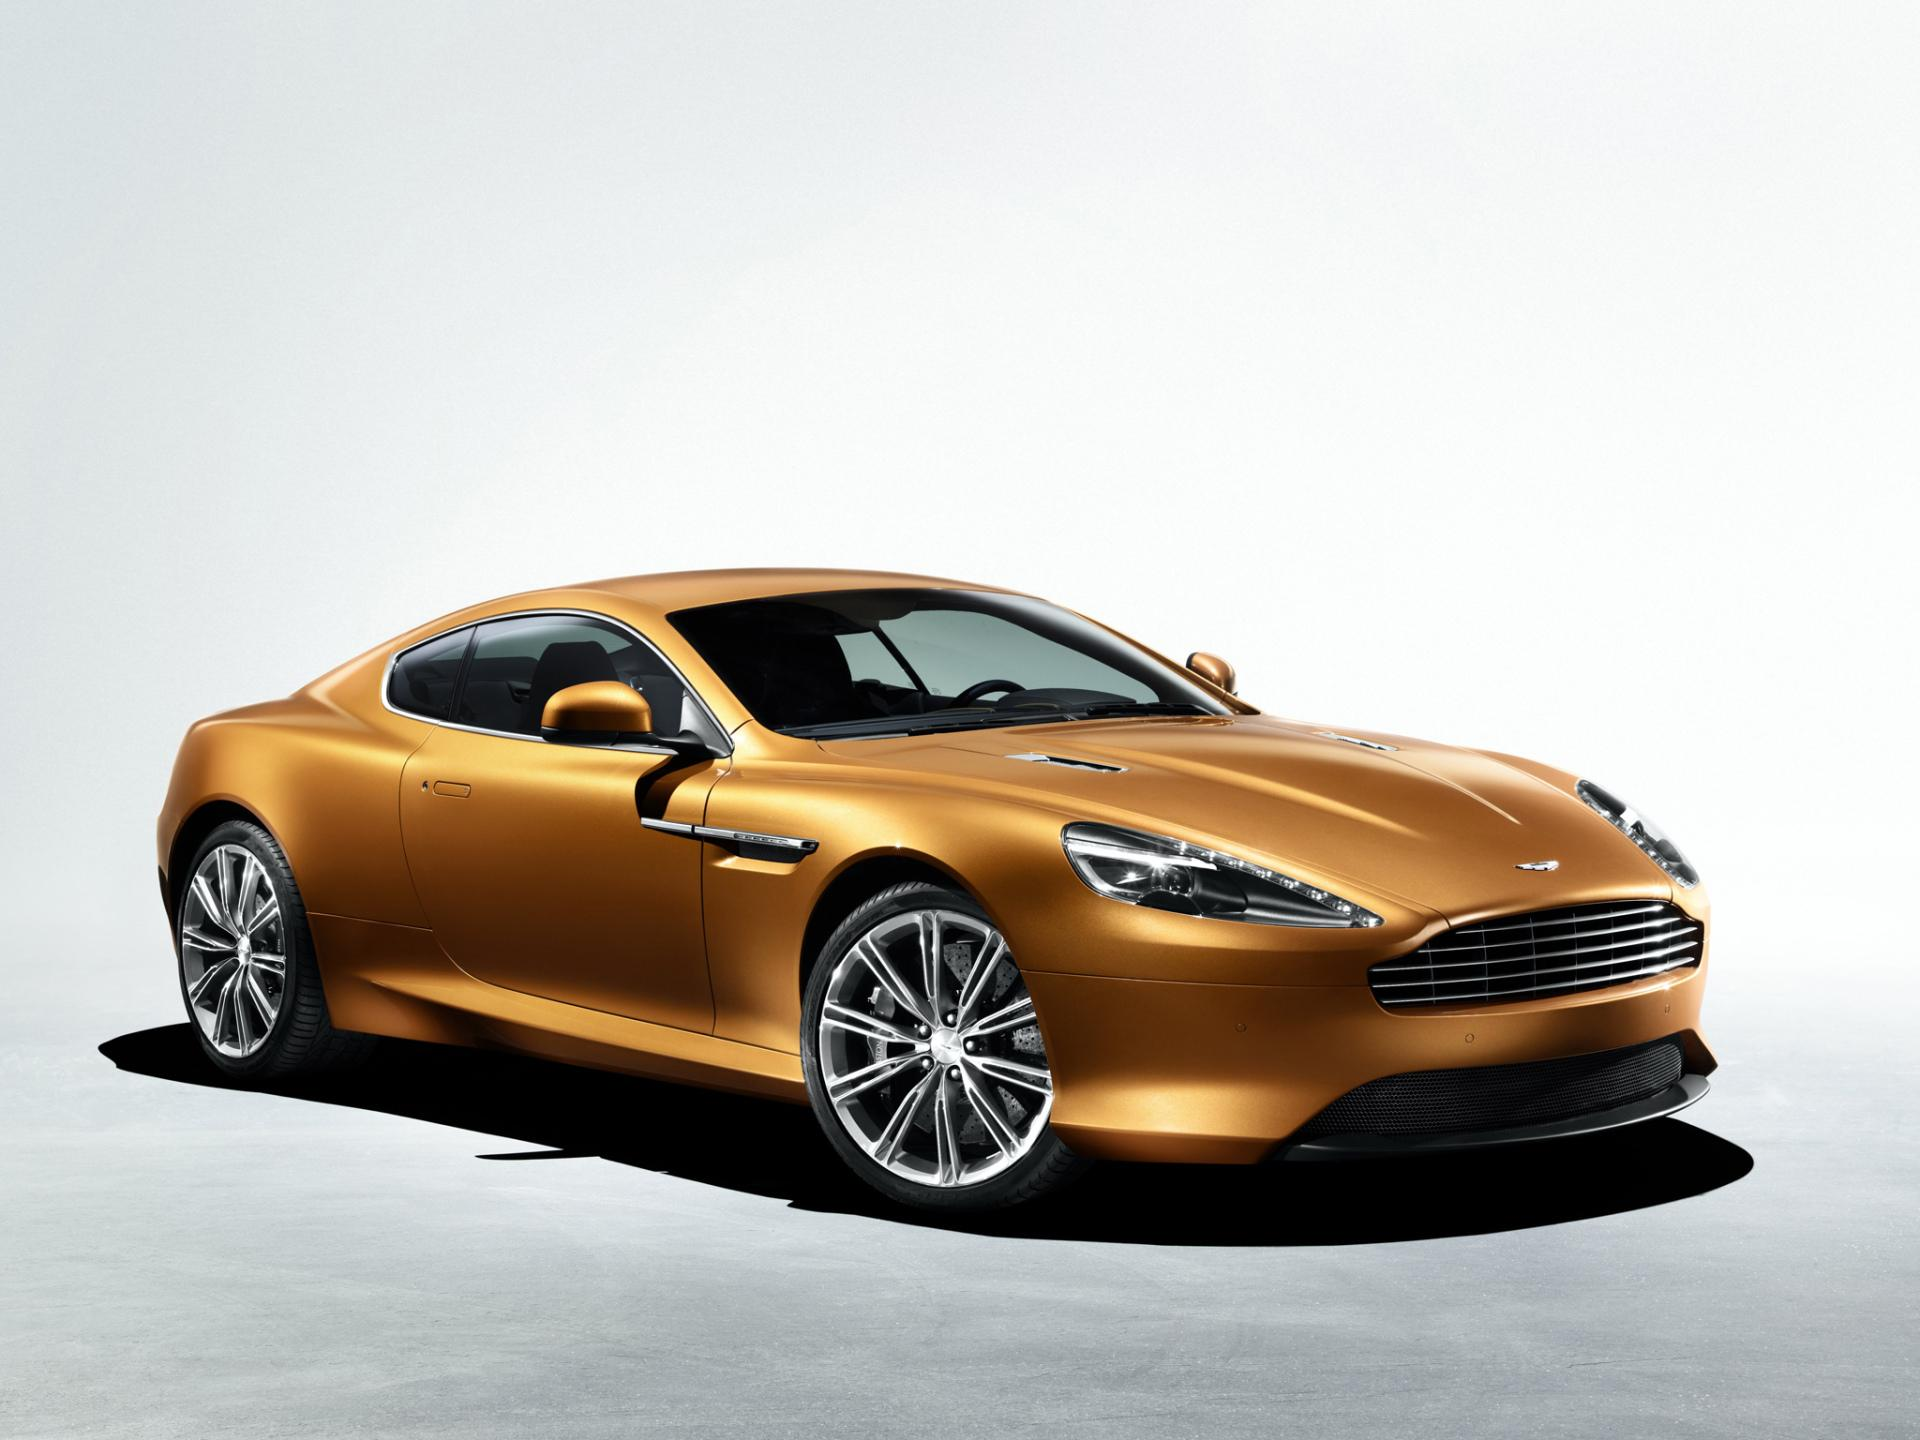 aston martin virage wallpaper hd download. Black Bedroom Furniture Sets. Home Design Ideas